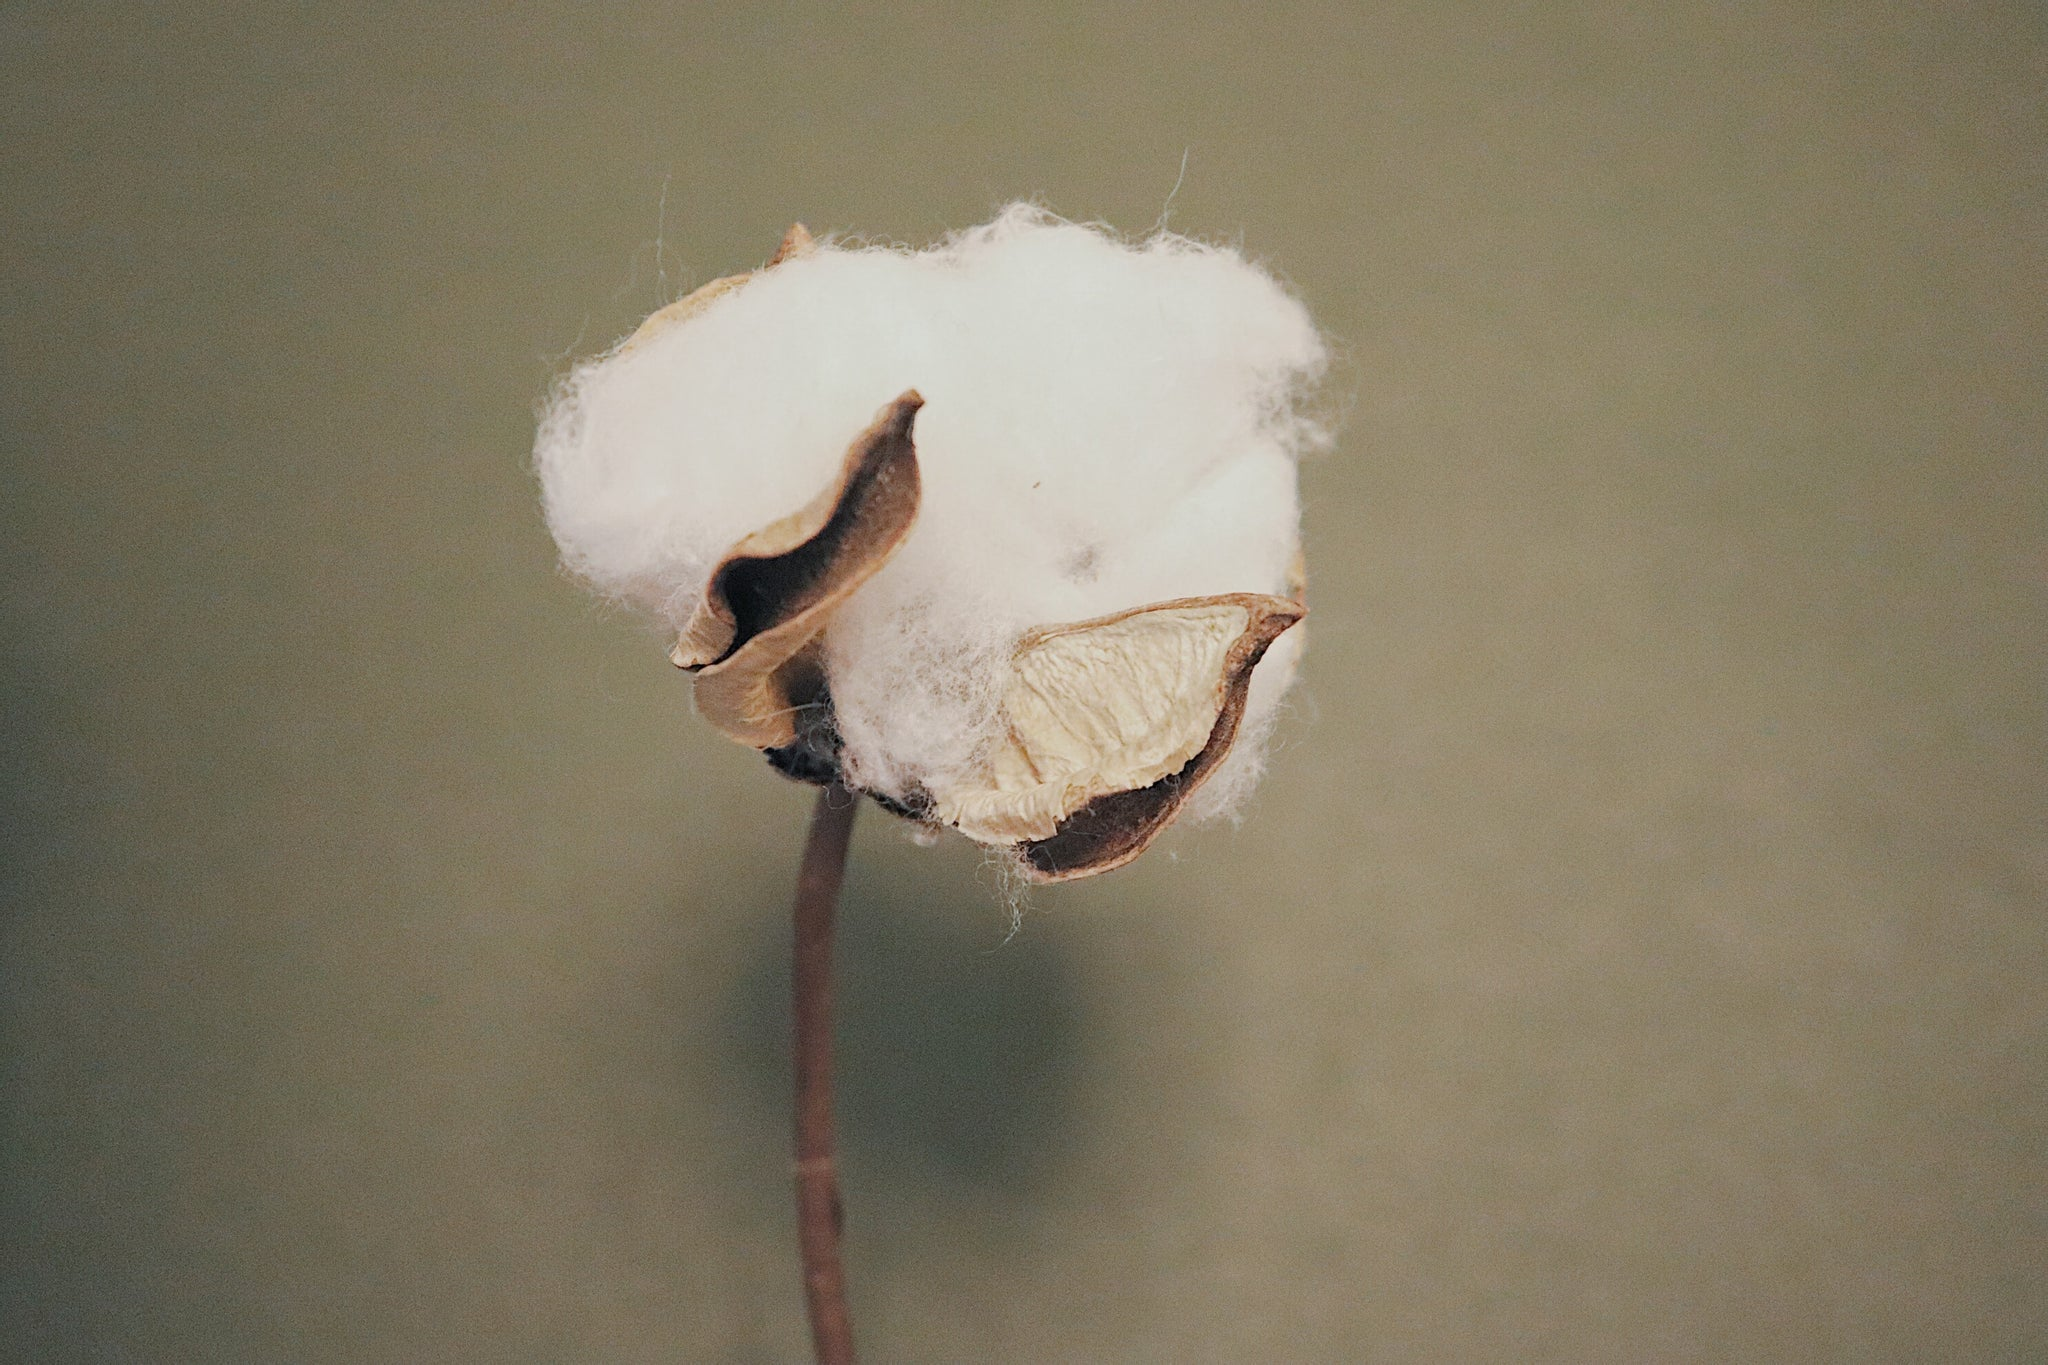 Organic Cotton vs. GMO Cotton: What's the Difference?